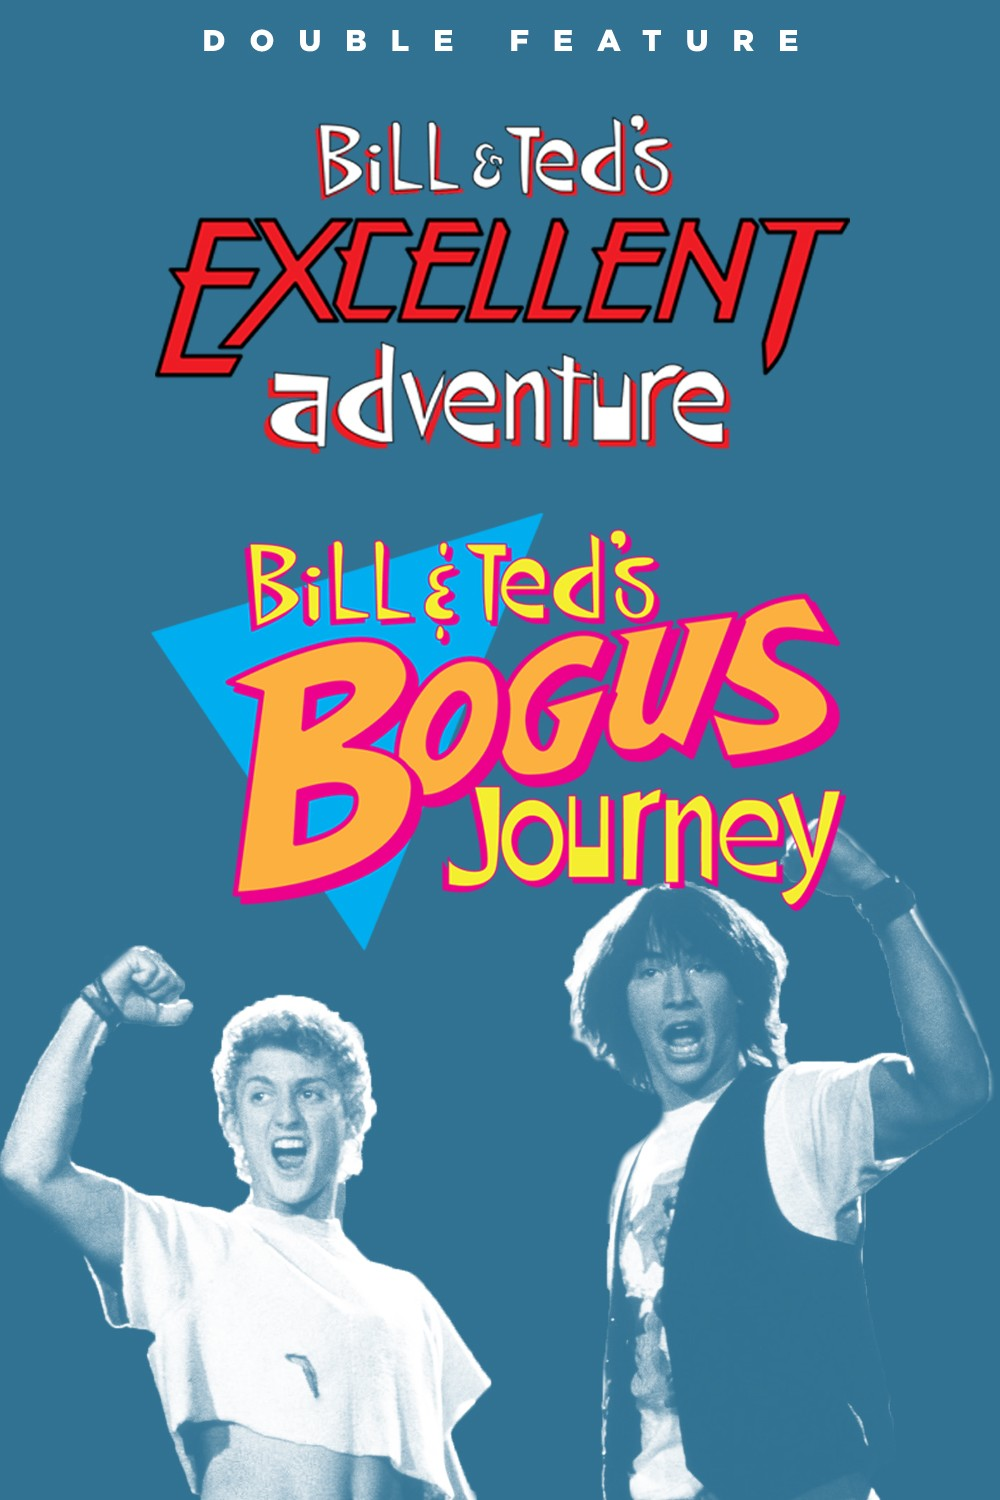 BILL + TED DOUBLE FEATURE